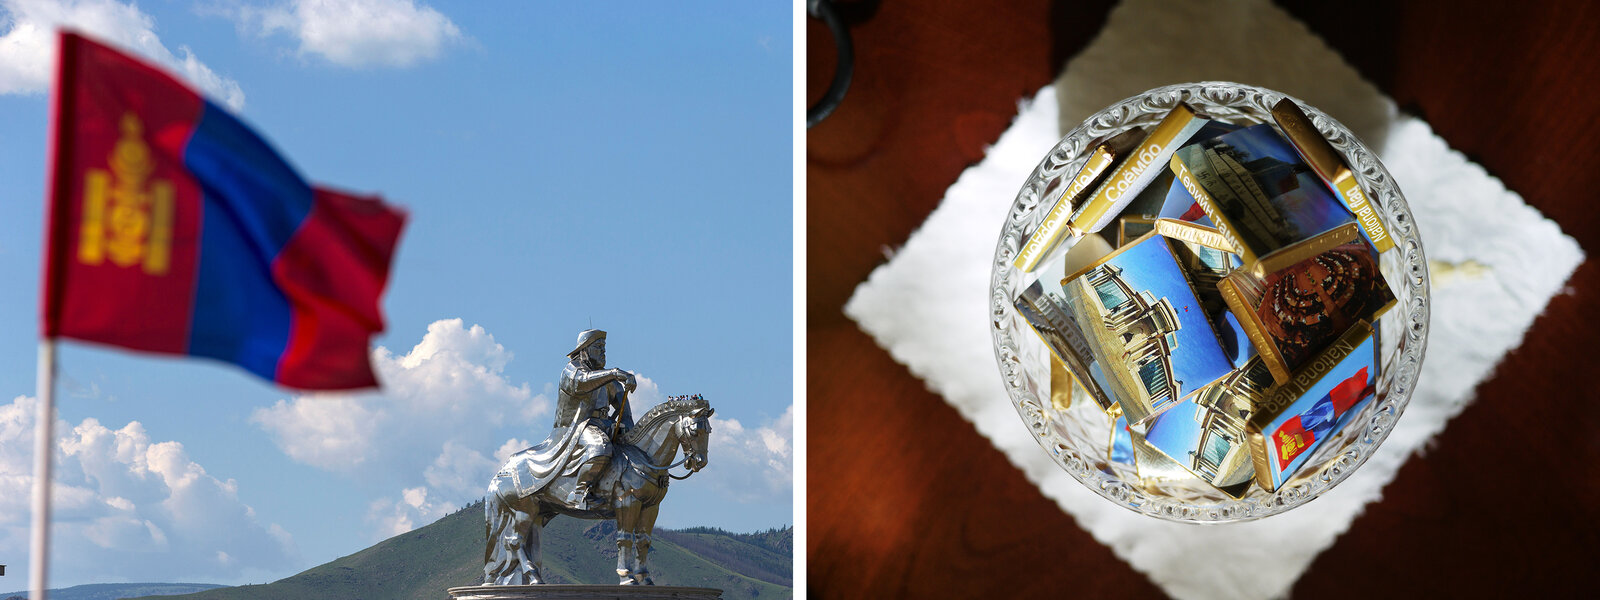 (Left) A Mongolian national flag flies near a Genghis Khan statue – the world's largest equestrian statue – in Tsonjin Boldog, Mongolia, on July 16. (Right) Chocolates are displayed for visitors to Mongolia's Government Palace in Ulaanbaatar.     Joel Saget/AFP/Getty Images and Rob Schmitz/NPR.